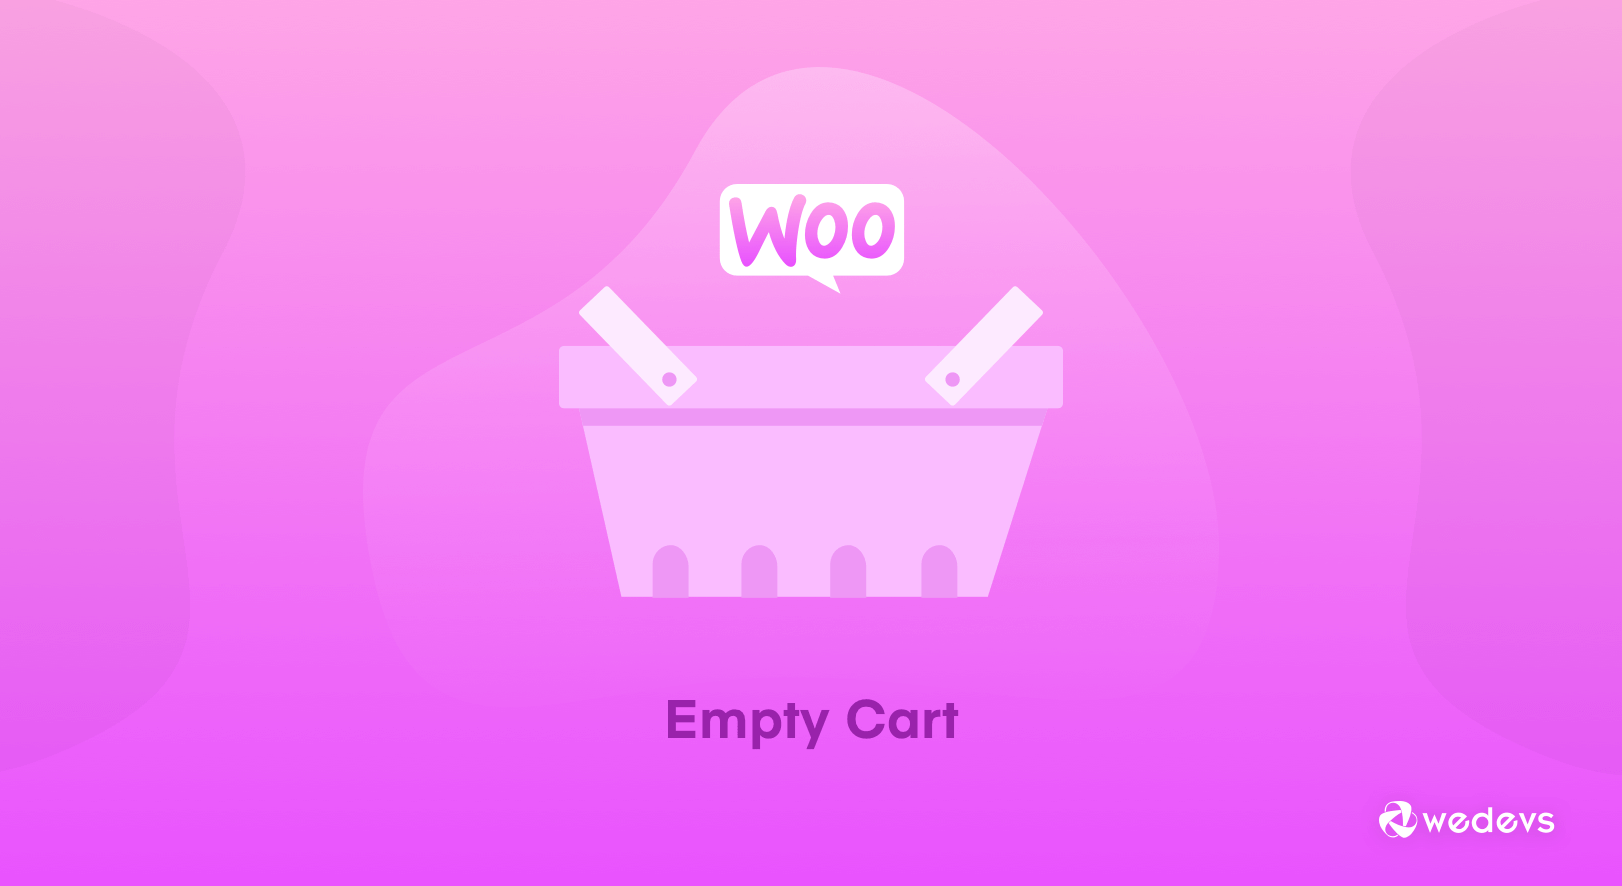 How to Deal with WooCommerce Empty Cart Issues (10 Possible Solutions)